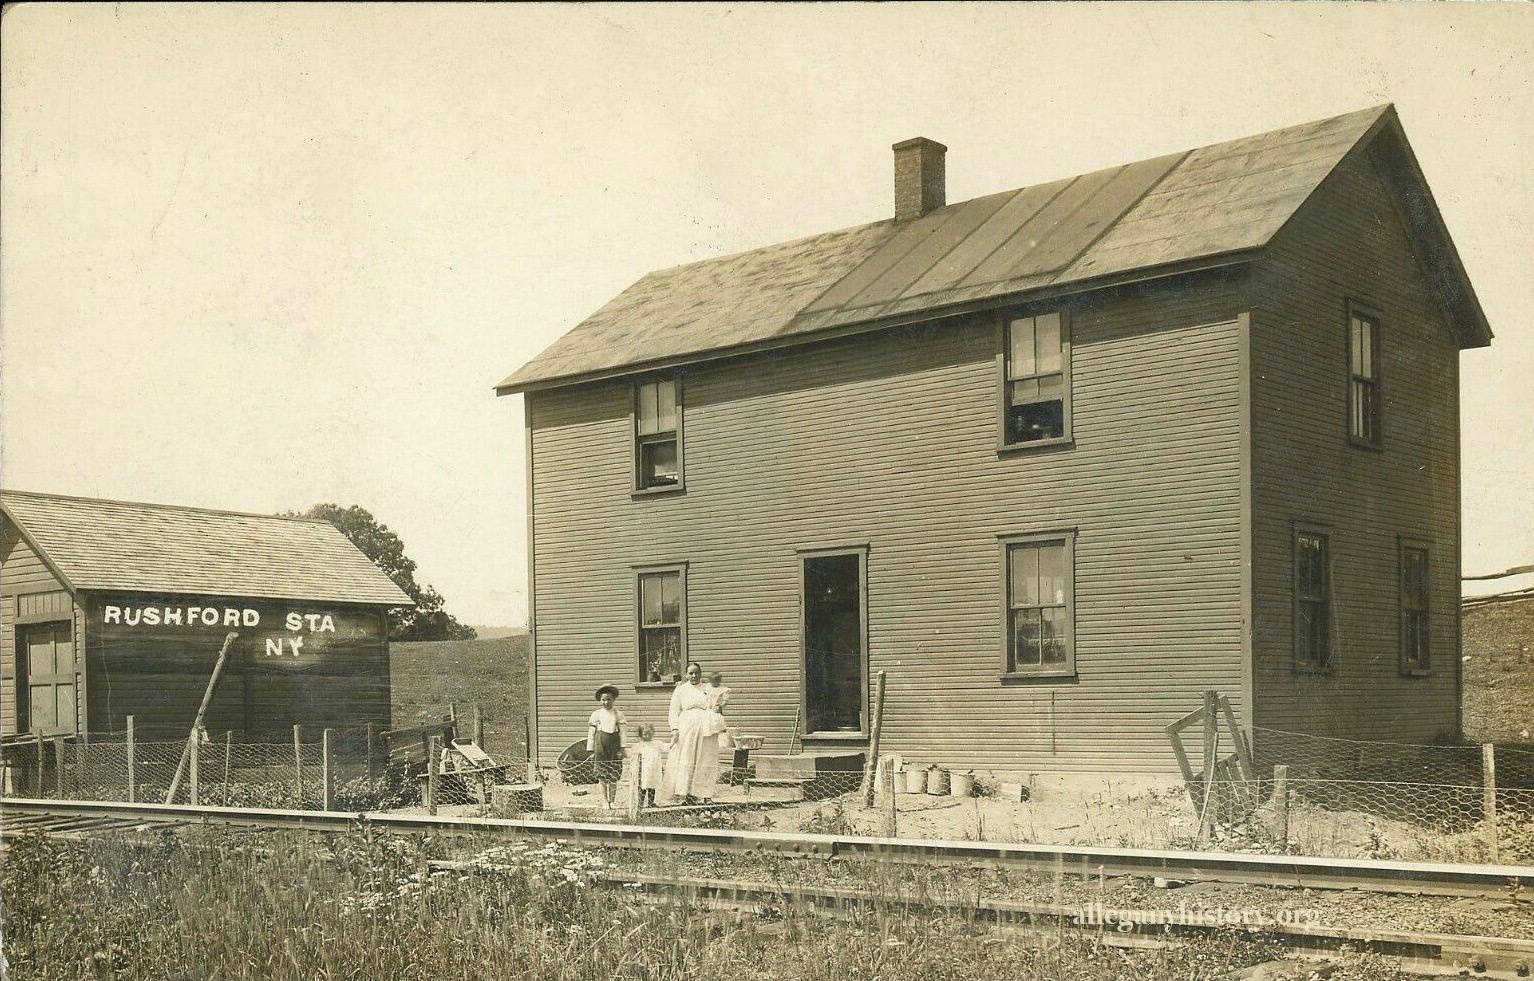 Tonawanda Valley & Cuba Railroad Station, Rushford N.Y. Photo contributed by Richard Palmer